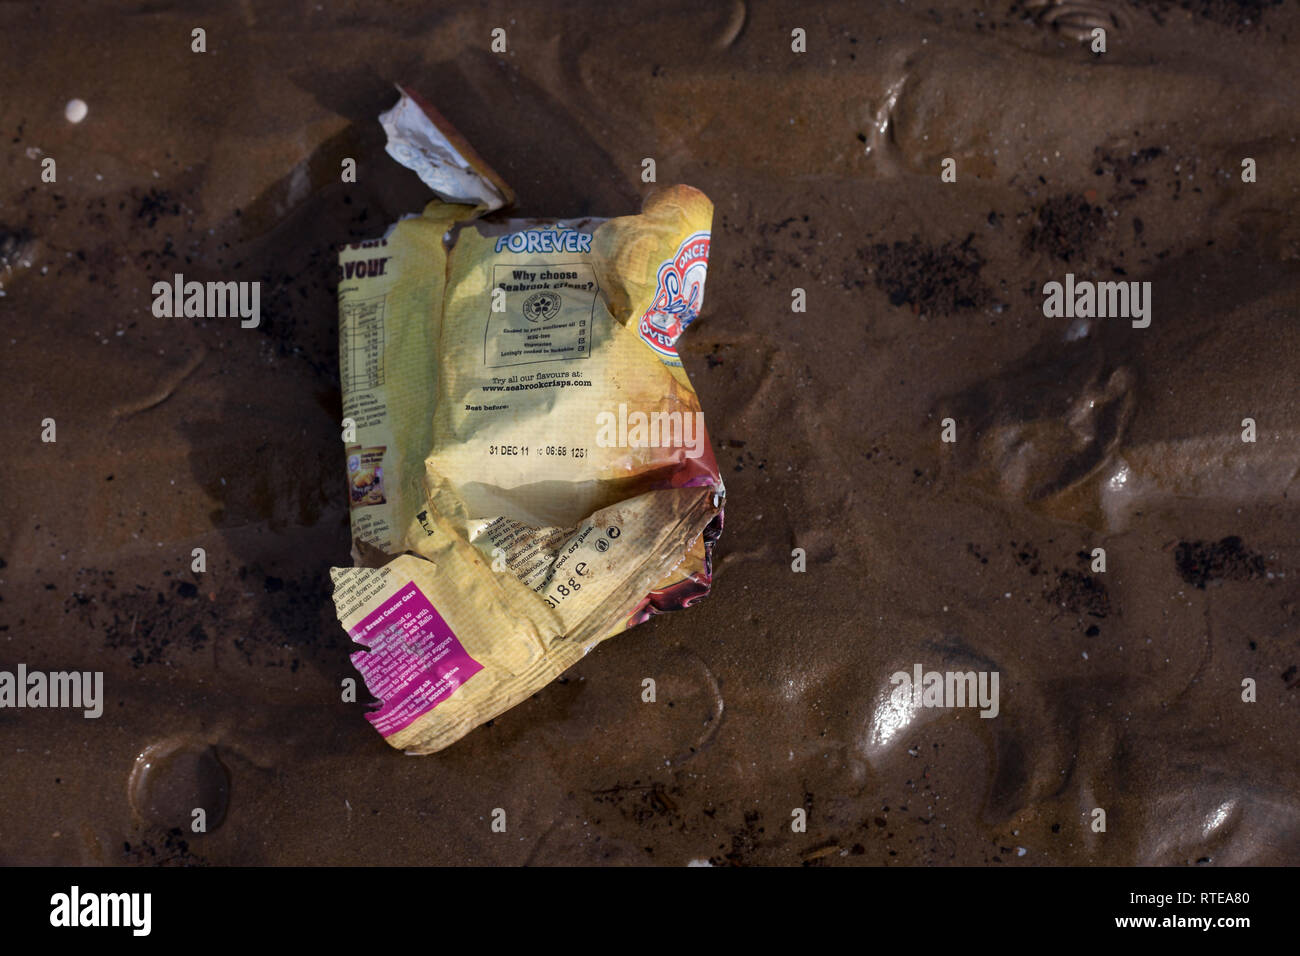 Crosby, Merseyside, UK. 1 March 2019. As plastic pollution blights the seas, a crisp bag with a use-by date of 2011 has been washed up on a beach in Crosby, north-west England. Premos/Alamy Live News - Stock Image